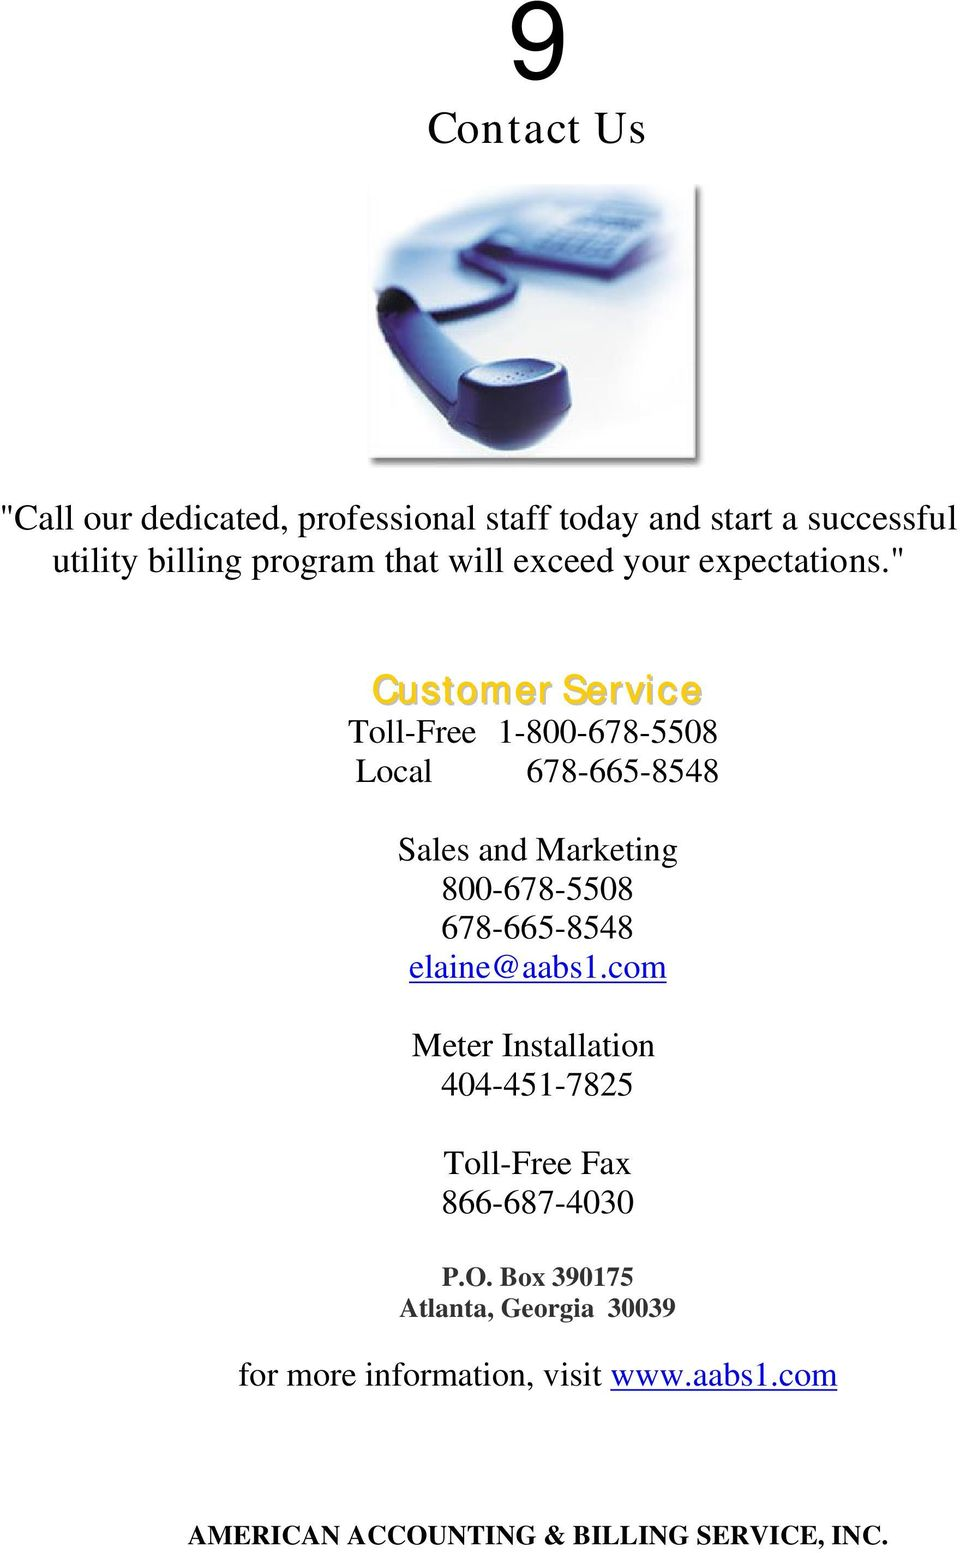 """ Customer Service Toll-Free 1-800-678-5508 Local 678-665-8548 Sales and Marketing 800-678-5508"